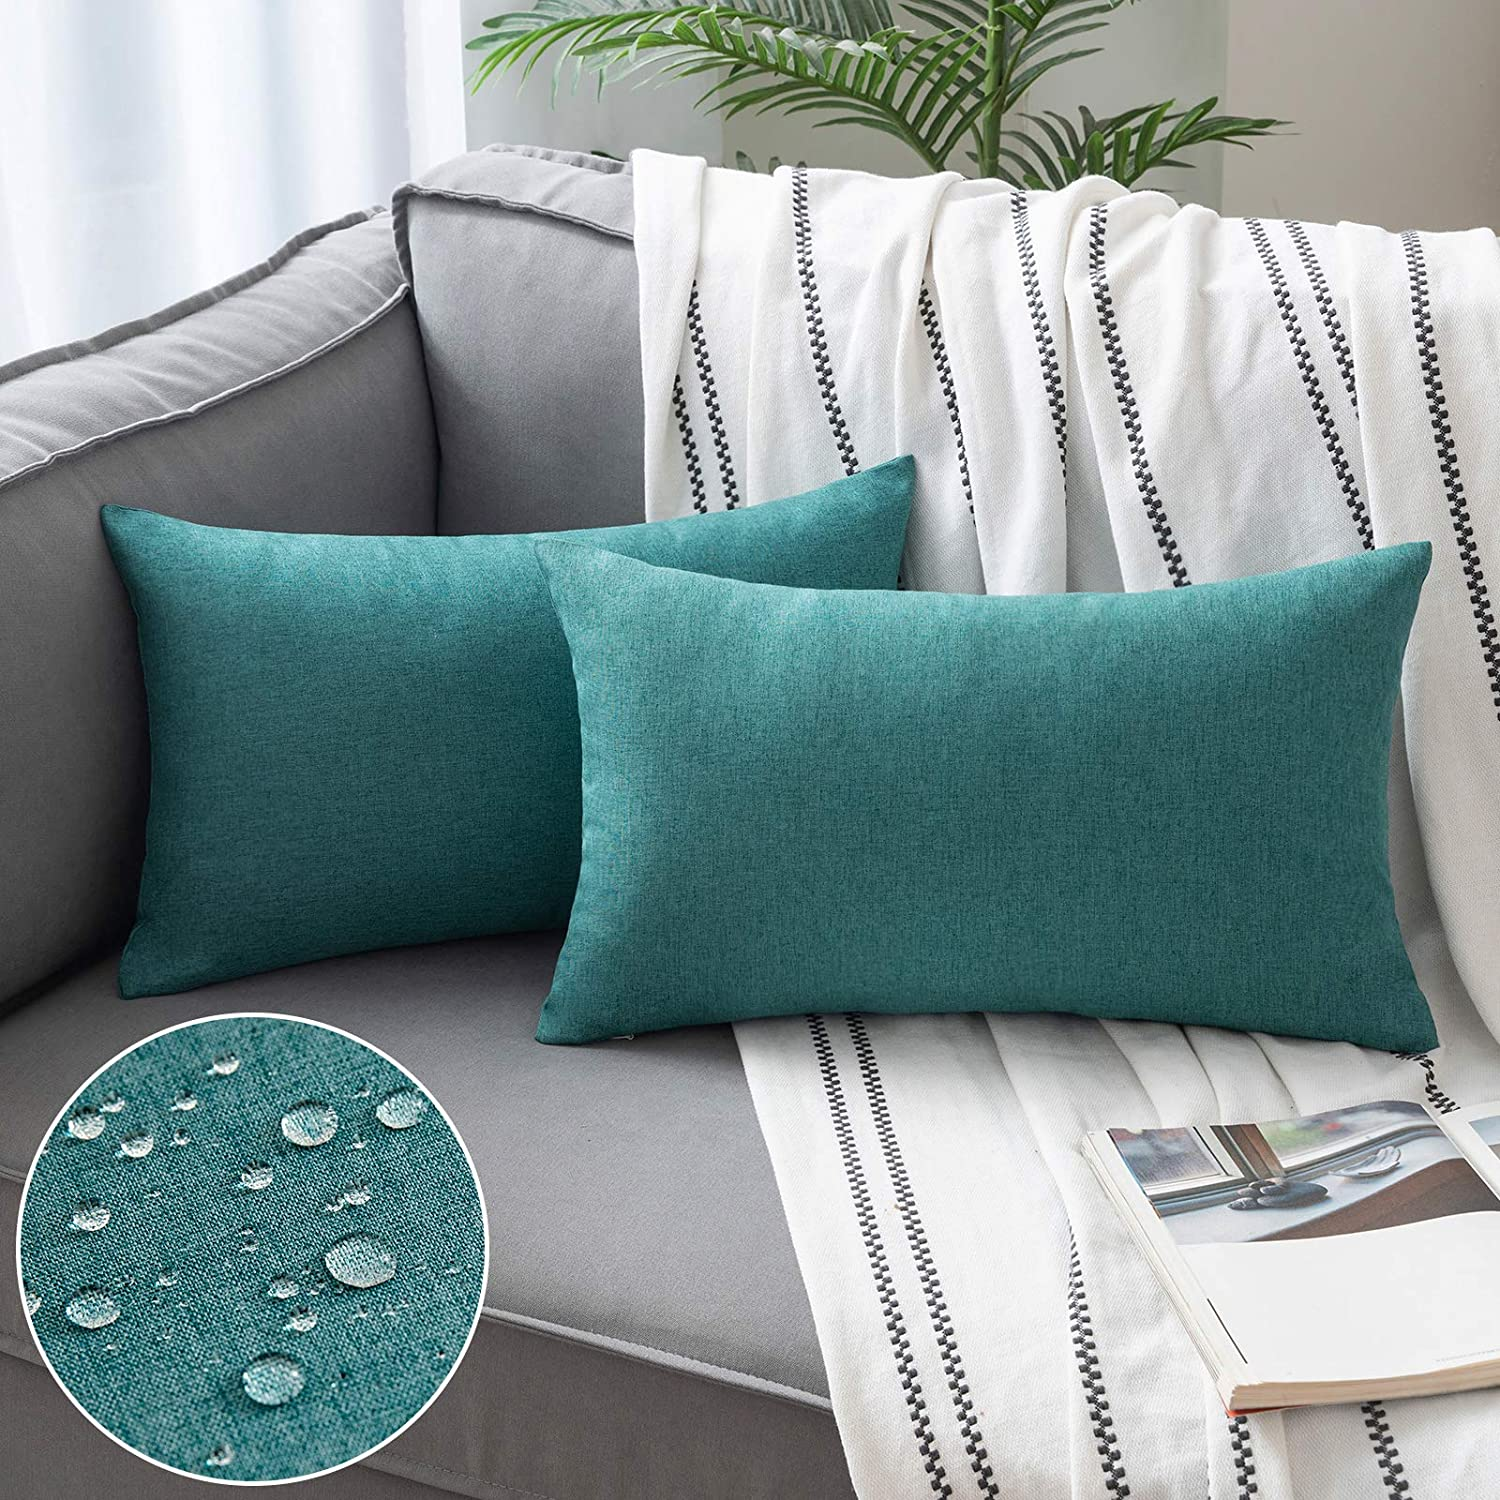 Woaboy Set of 2 Outdoor Waterproof Throw Pillow Covers Decorative Farmhouse Solid Cushion Cases for Patio Garden Sofa Chairs Turquoise 12x20 inch